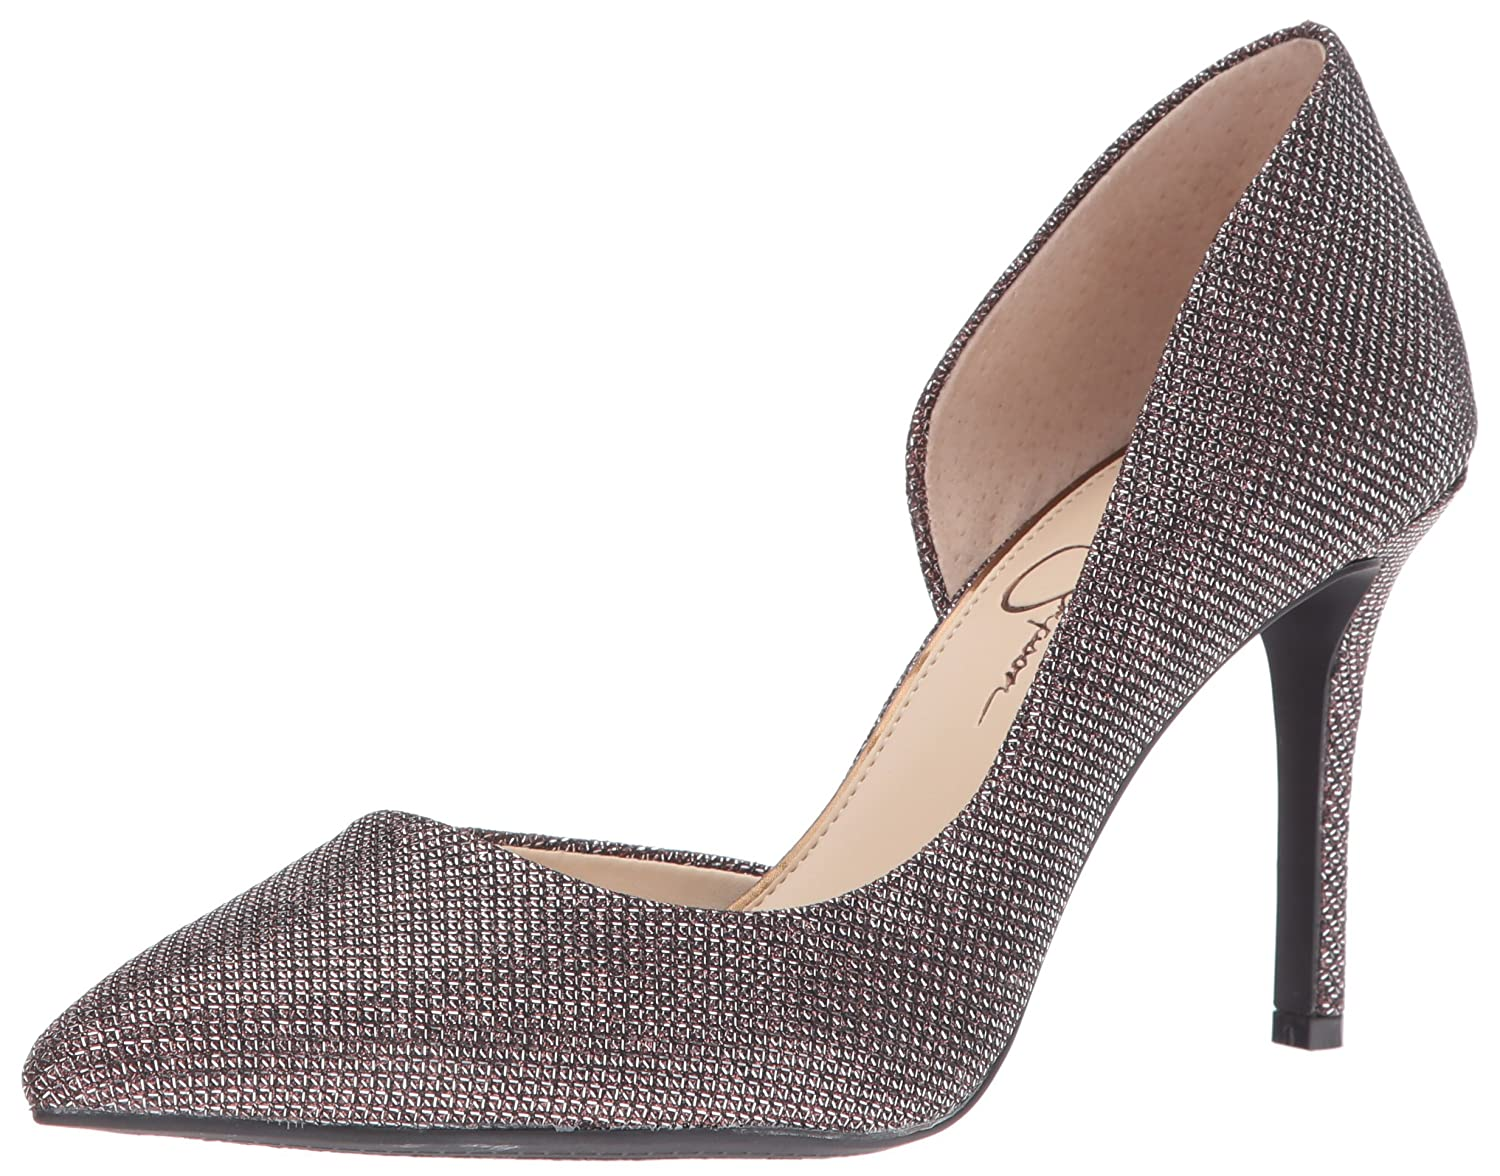 20182017 Flash Player Jessica Simpson Womens Lacewell D'Orsay Pump On Sale Online